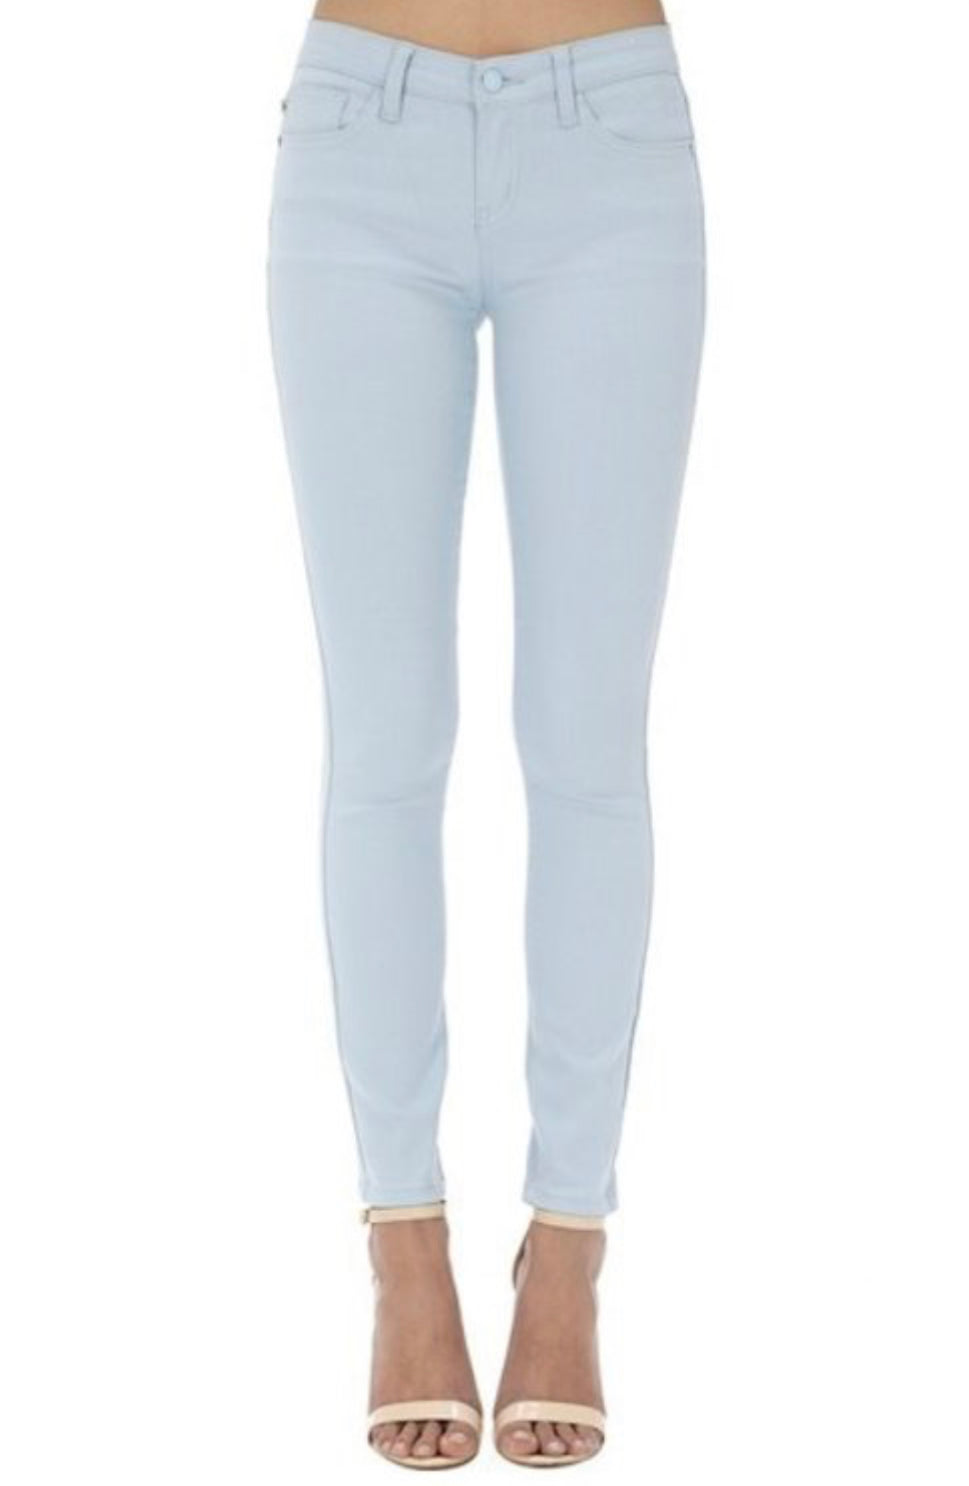 Judy Blue Light Blue Denim Skinny Fit